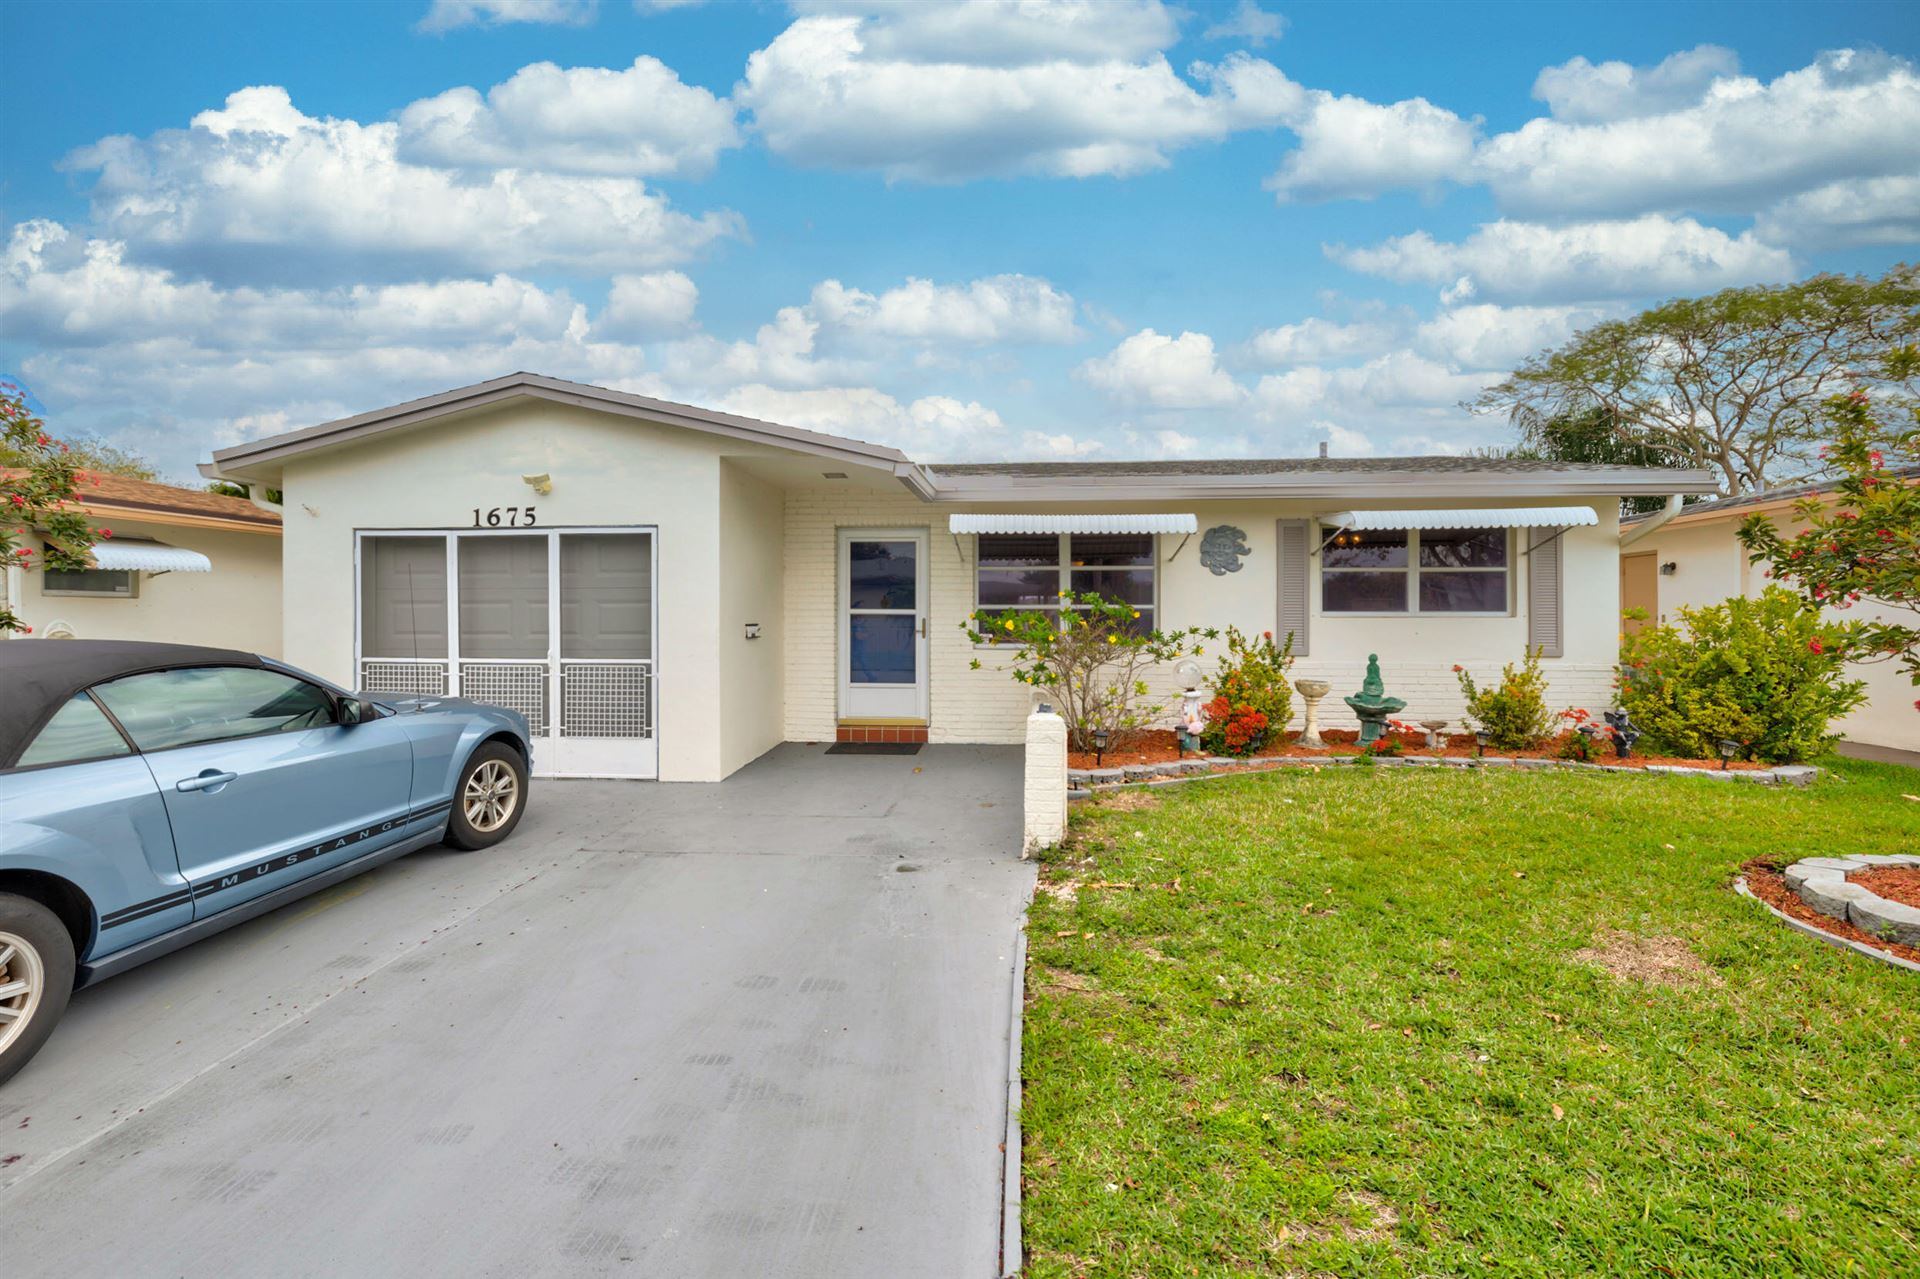 Photo of 1675 NW 69th Terrace, Margate, FL 33063 (MLS # RX-10695116)